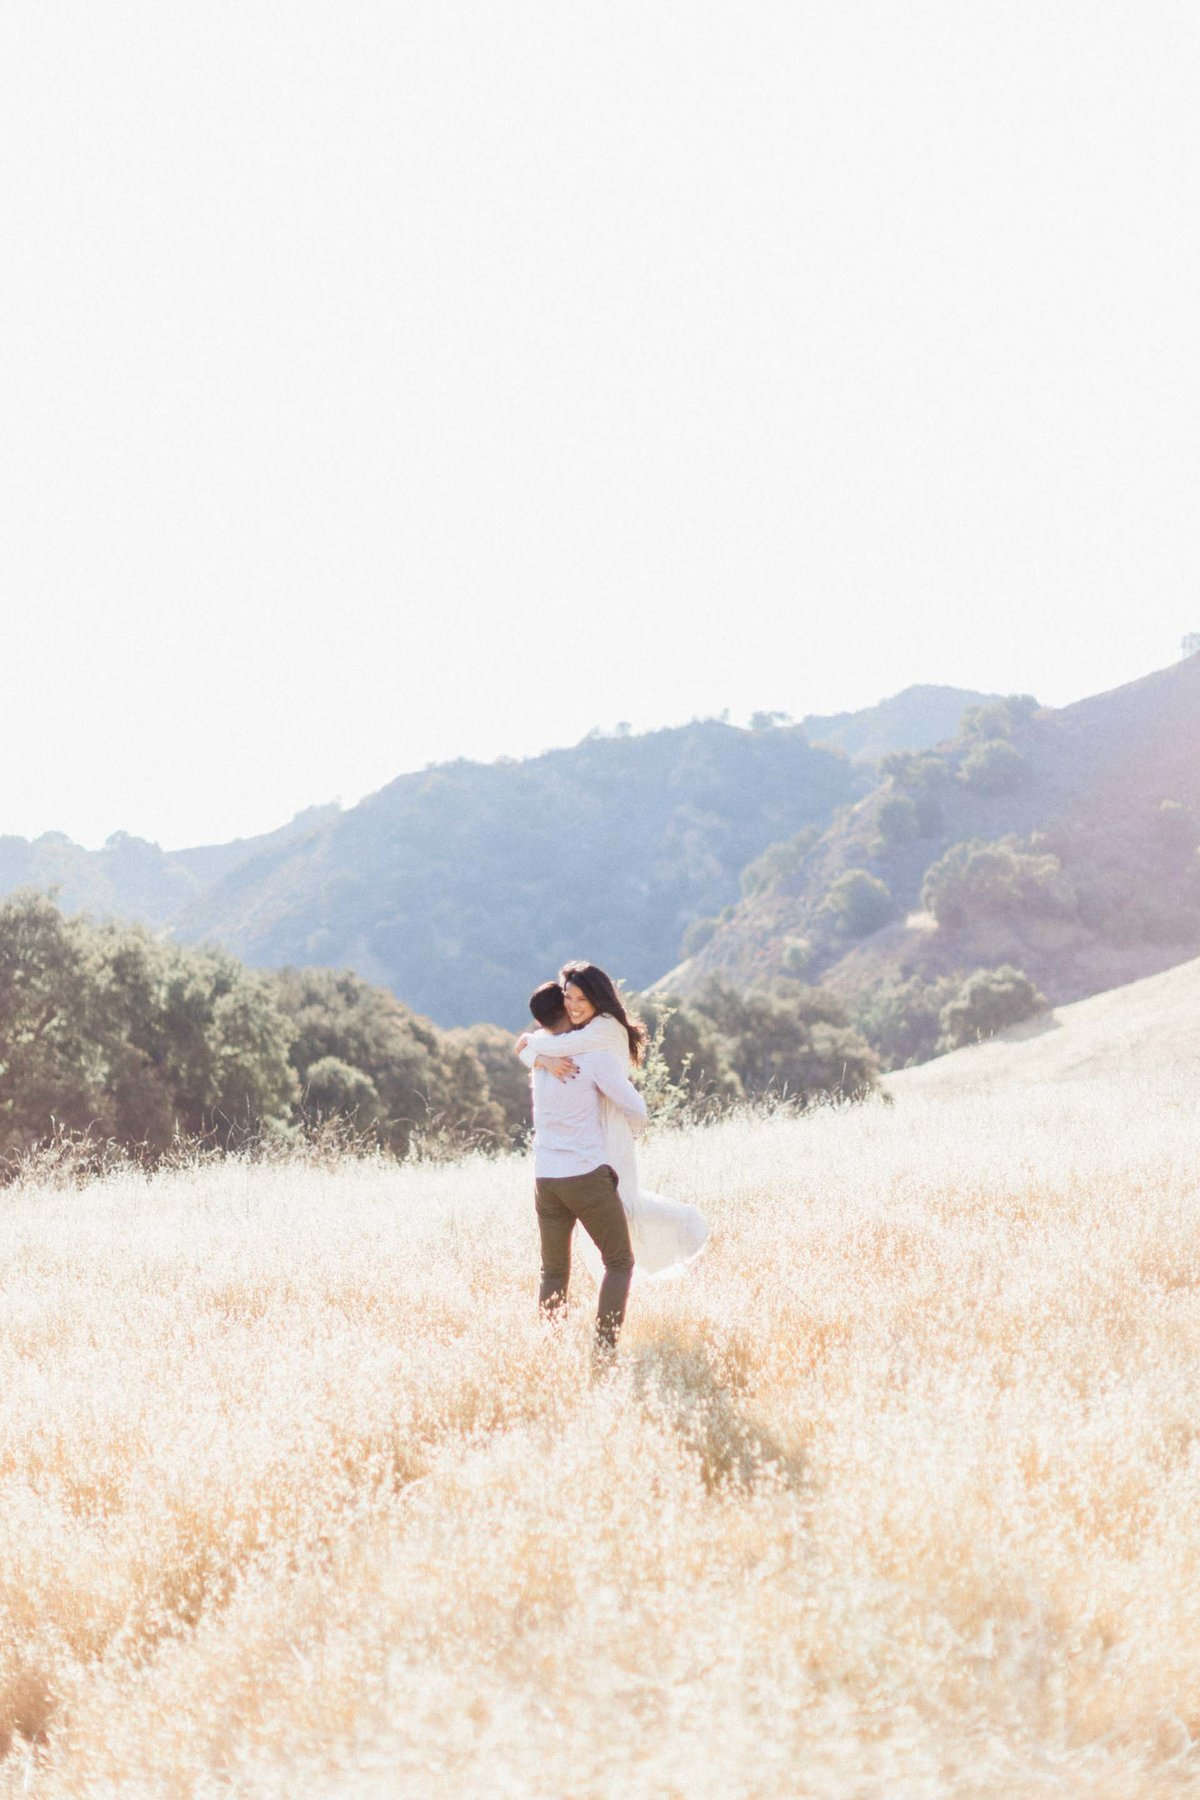 Malibu-Los-Angeles-Engagement-Photographer-13-DT